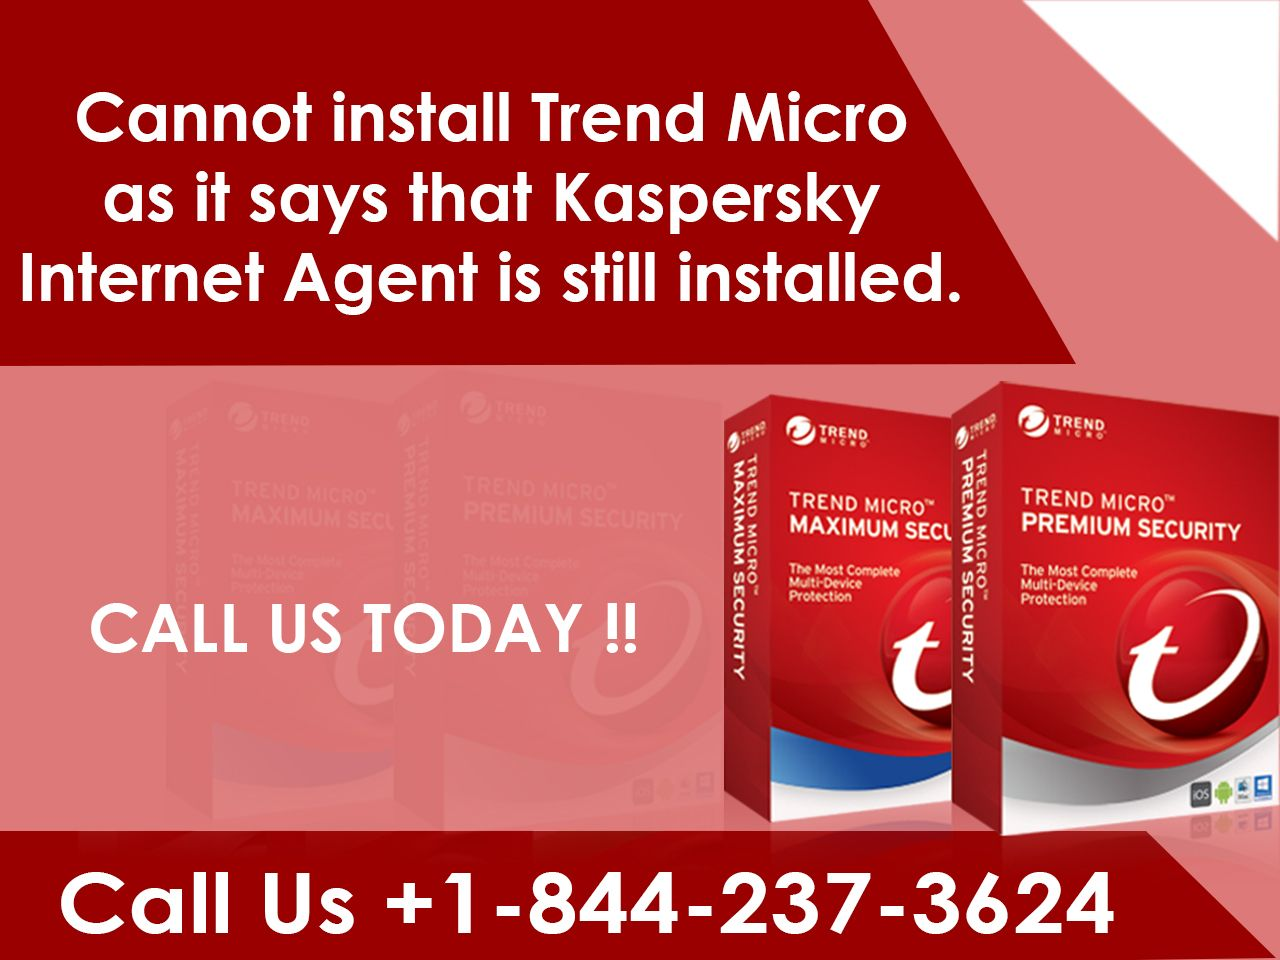 20 Best how to download trend micro with activation code? images in 2019